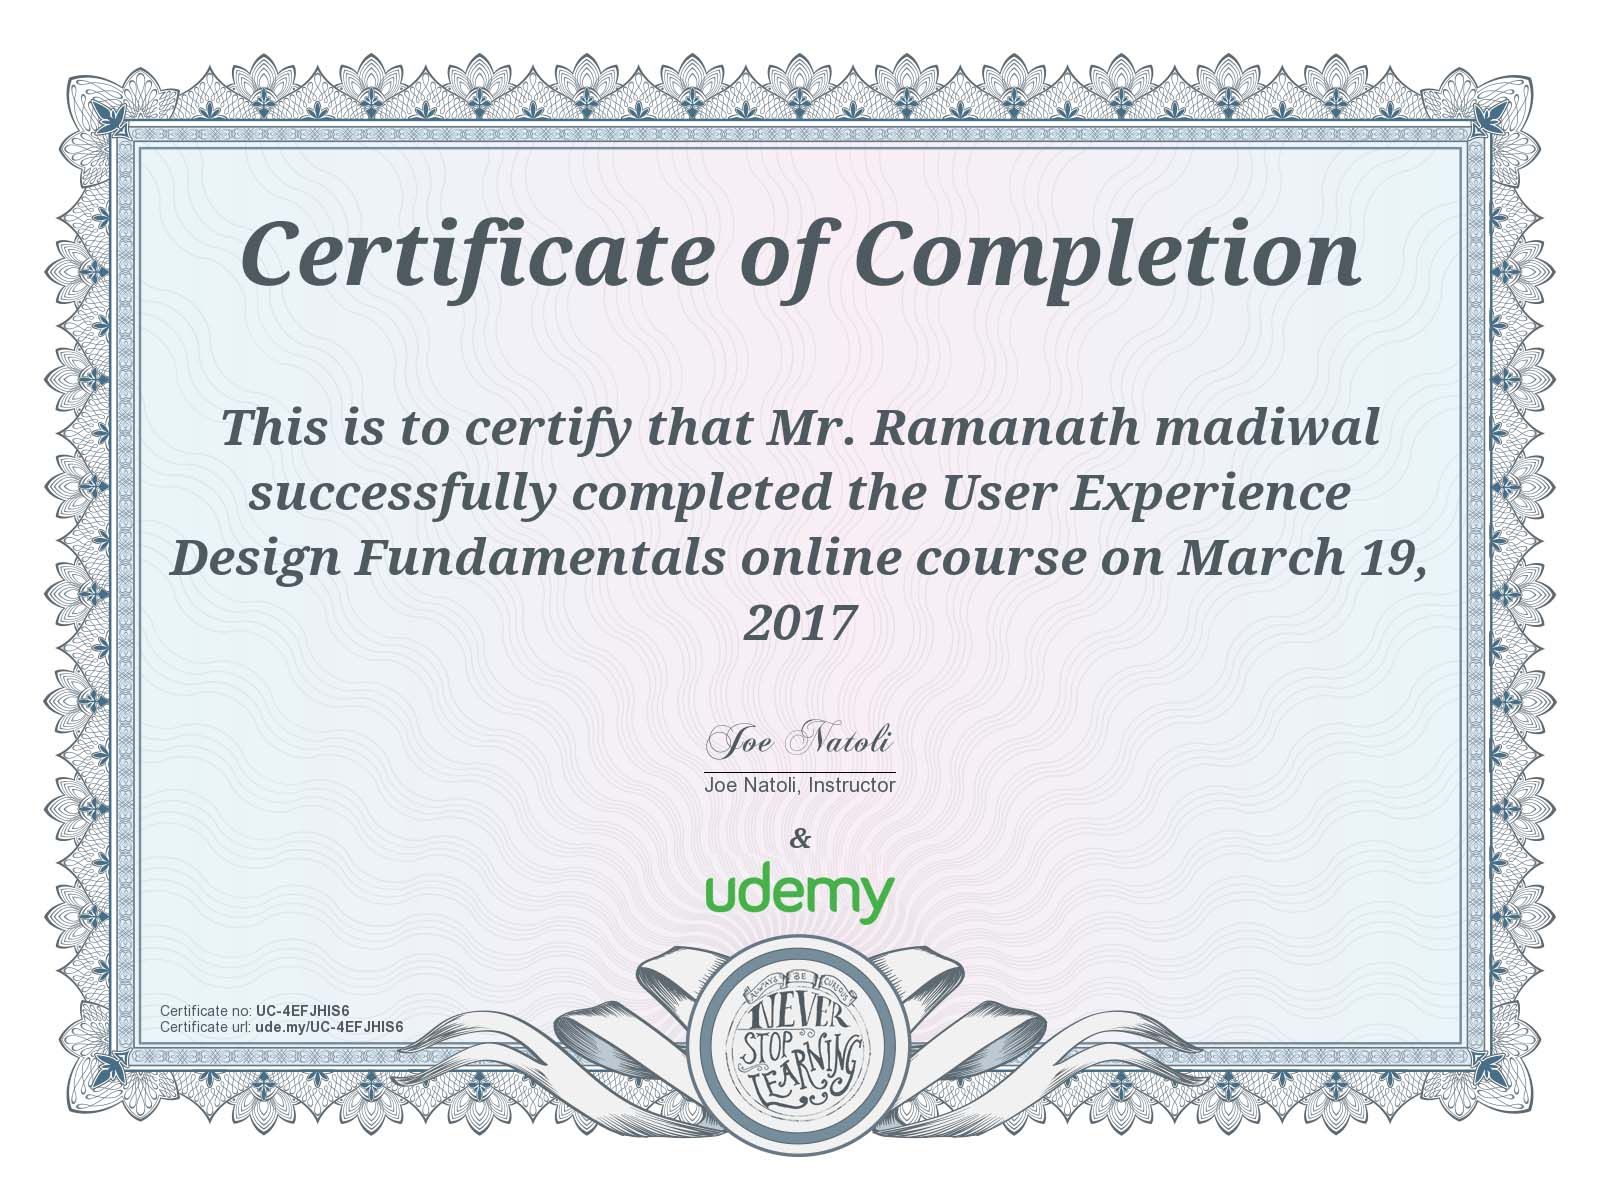 UX/UI Fundamentals certificates